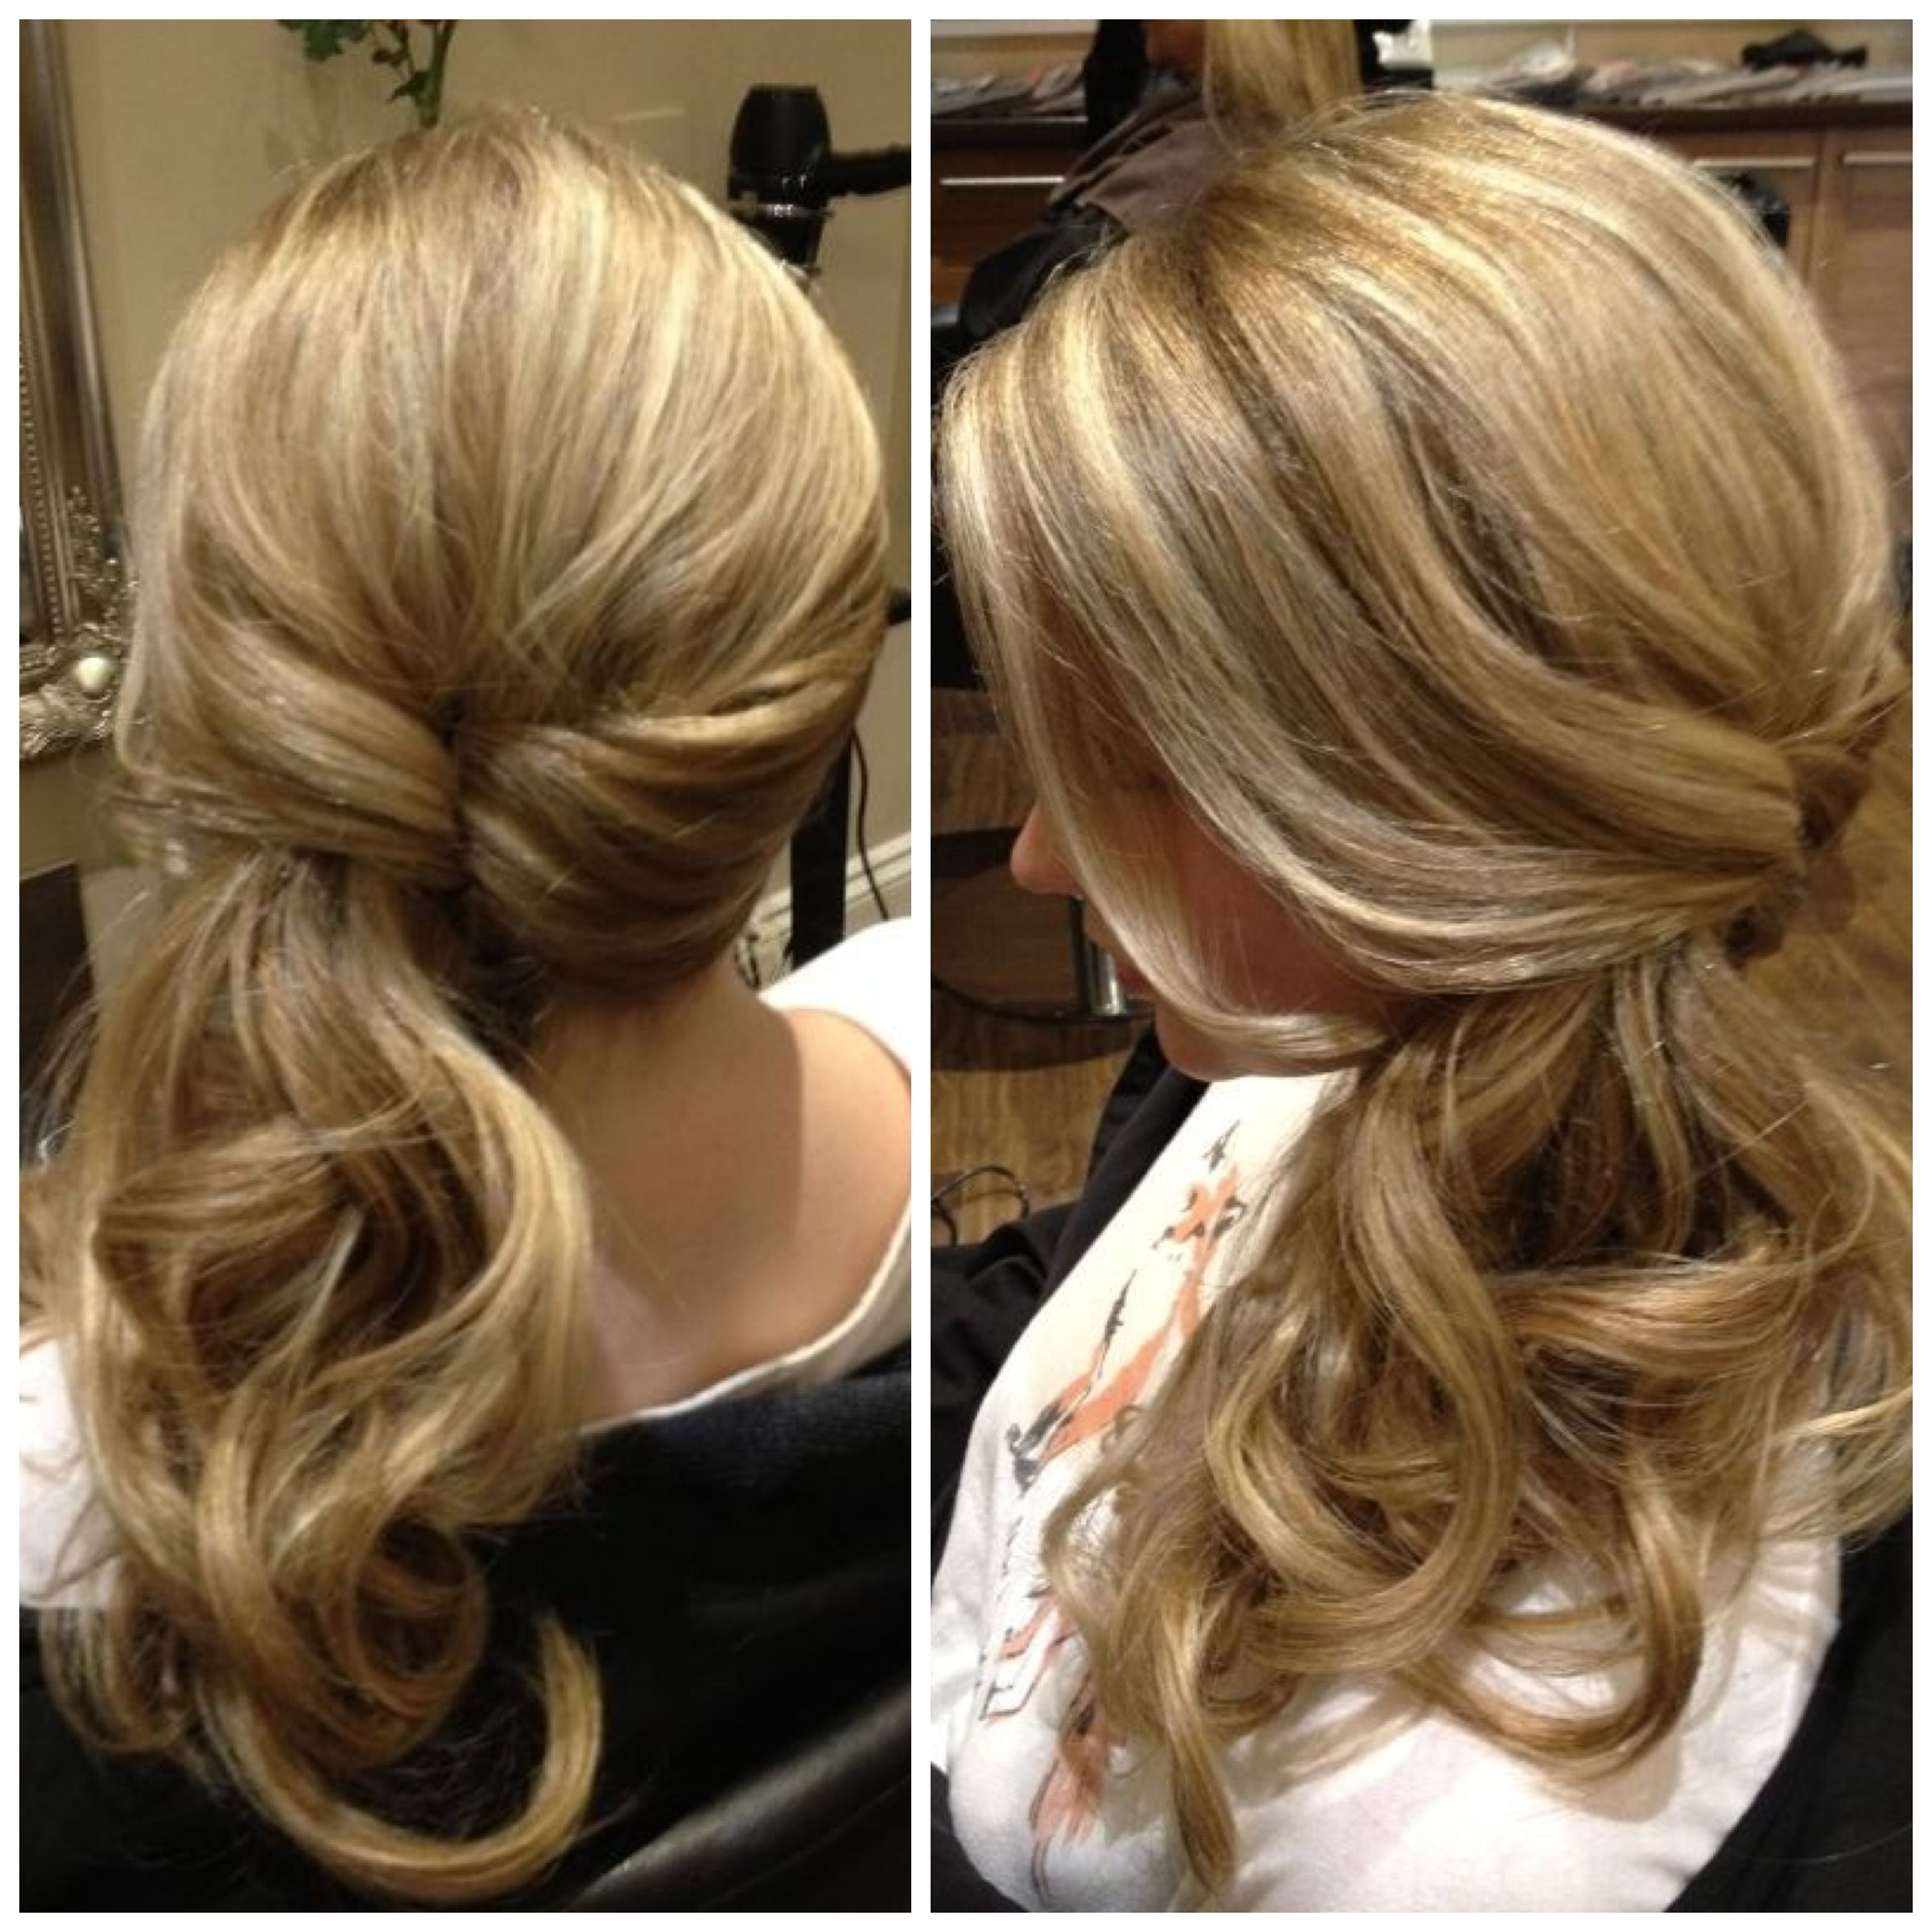 Popular Formal Side Pony Hairstyles For Brunettes With Pinreverence On Miss Child Beauty Pageant Ideas (View 4 of 20)